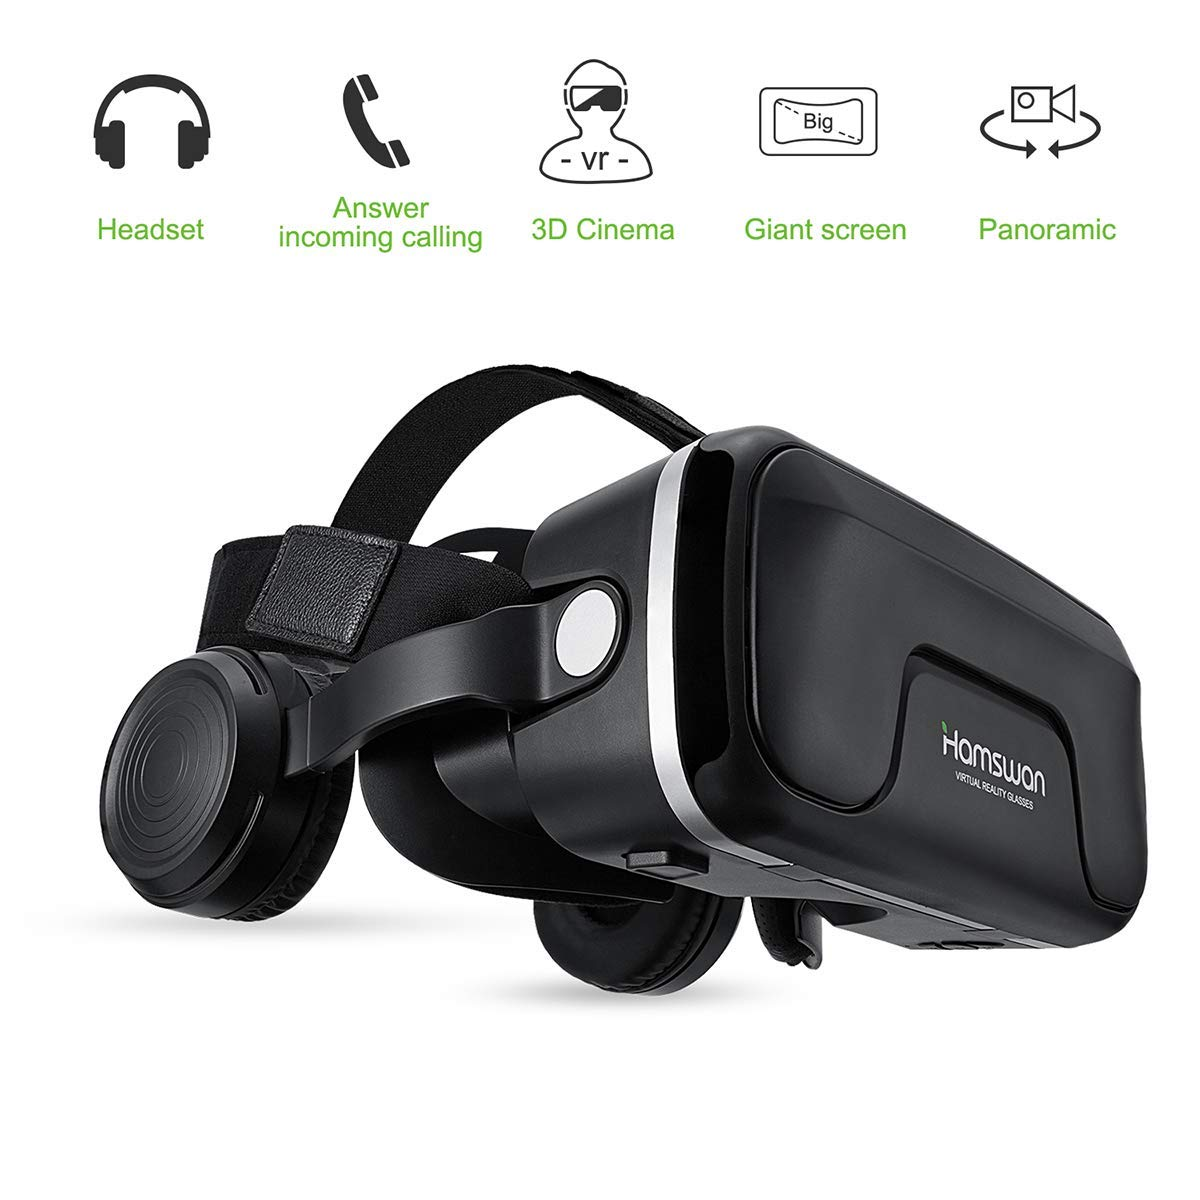 HAMSWAN VR Goggles, 3D VR Glasses VR Headset Virtual Reality Goggles Headset Glasses with Built-in Headset, Unique Design and Multifunction Button Compatible with Smartphones Within 4.0-6.0 inch